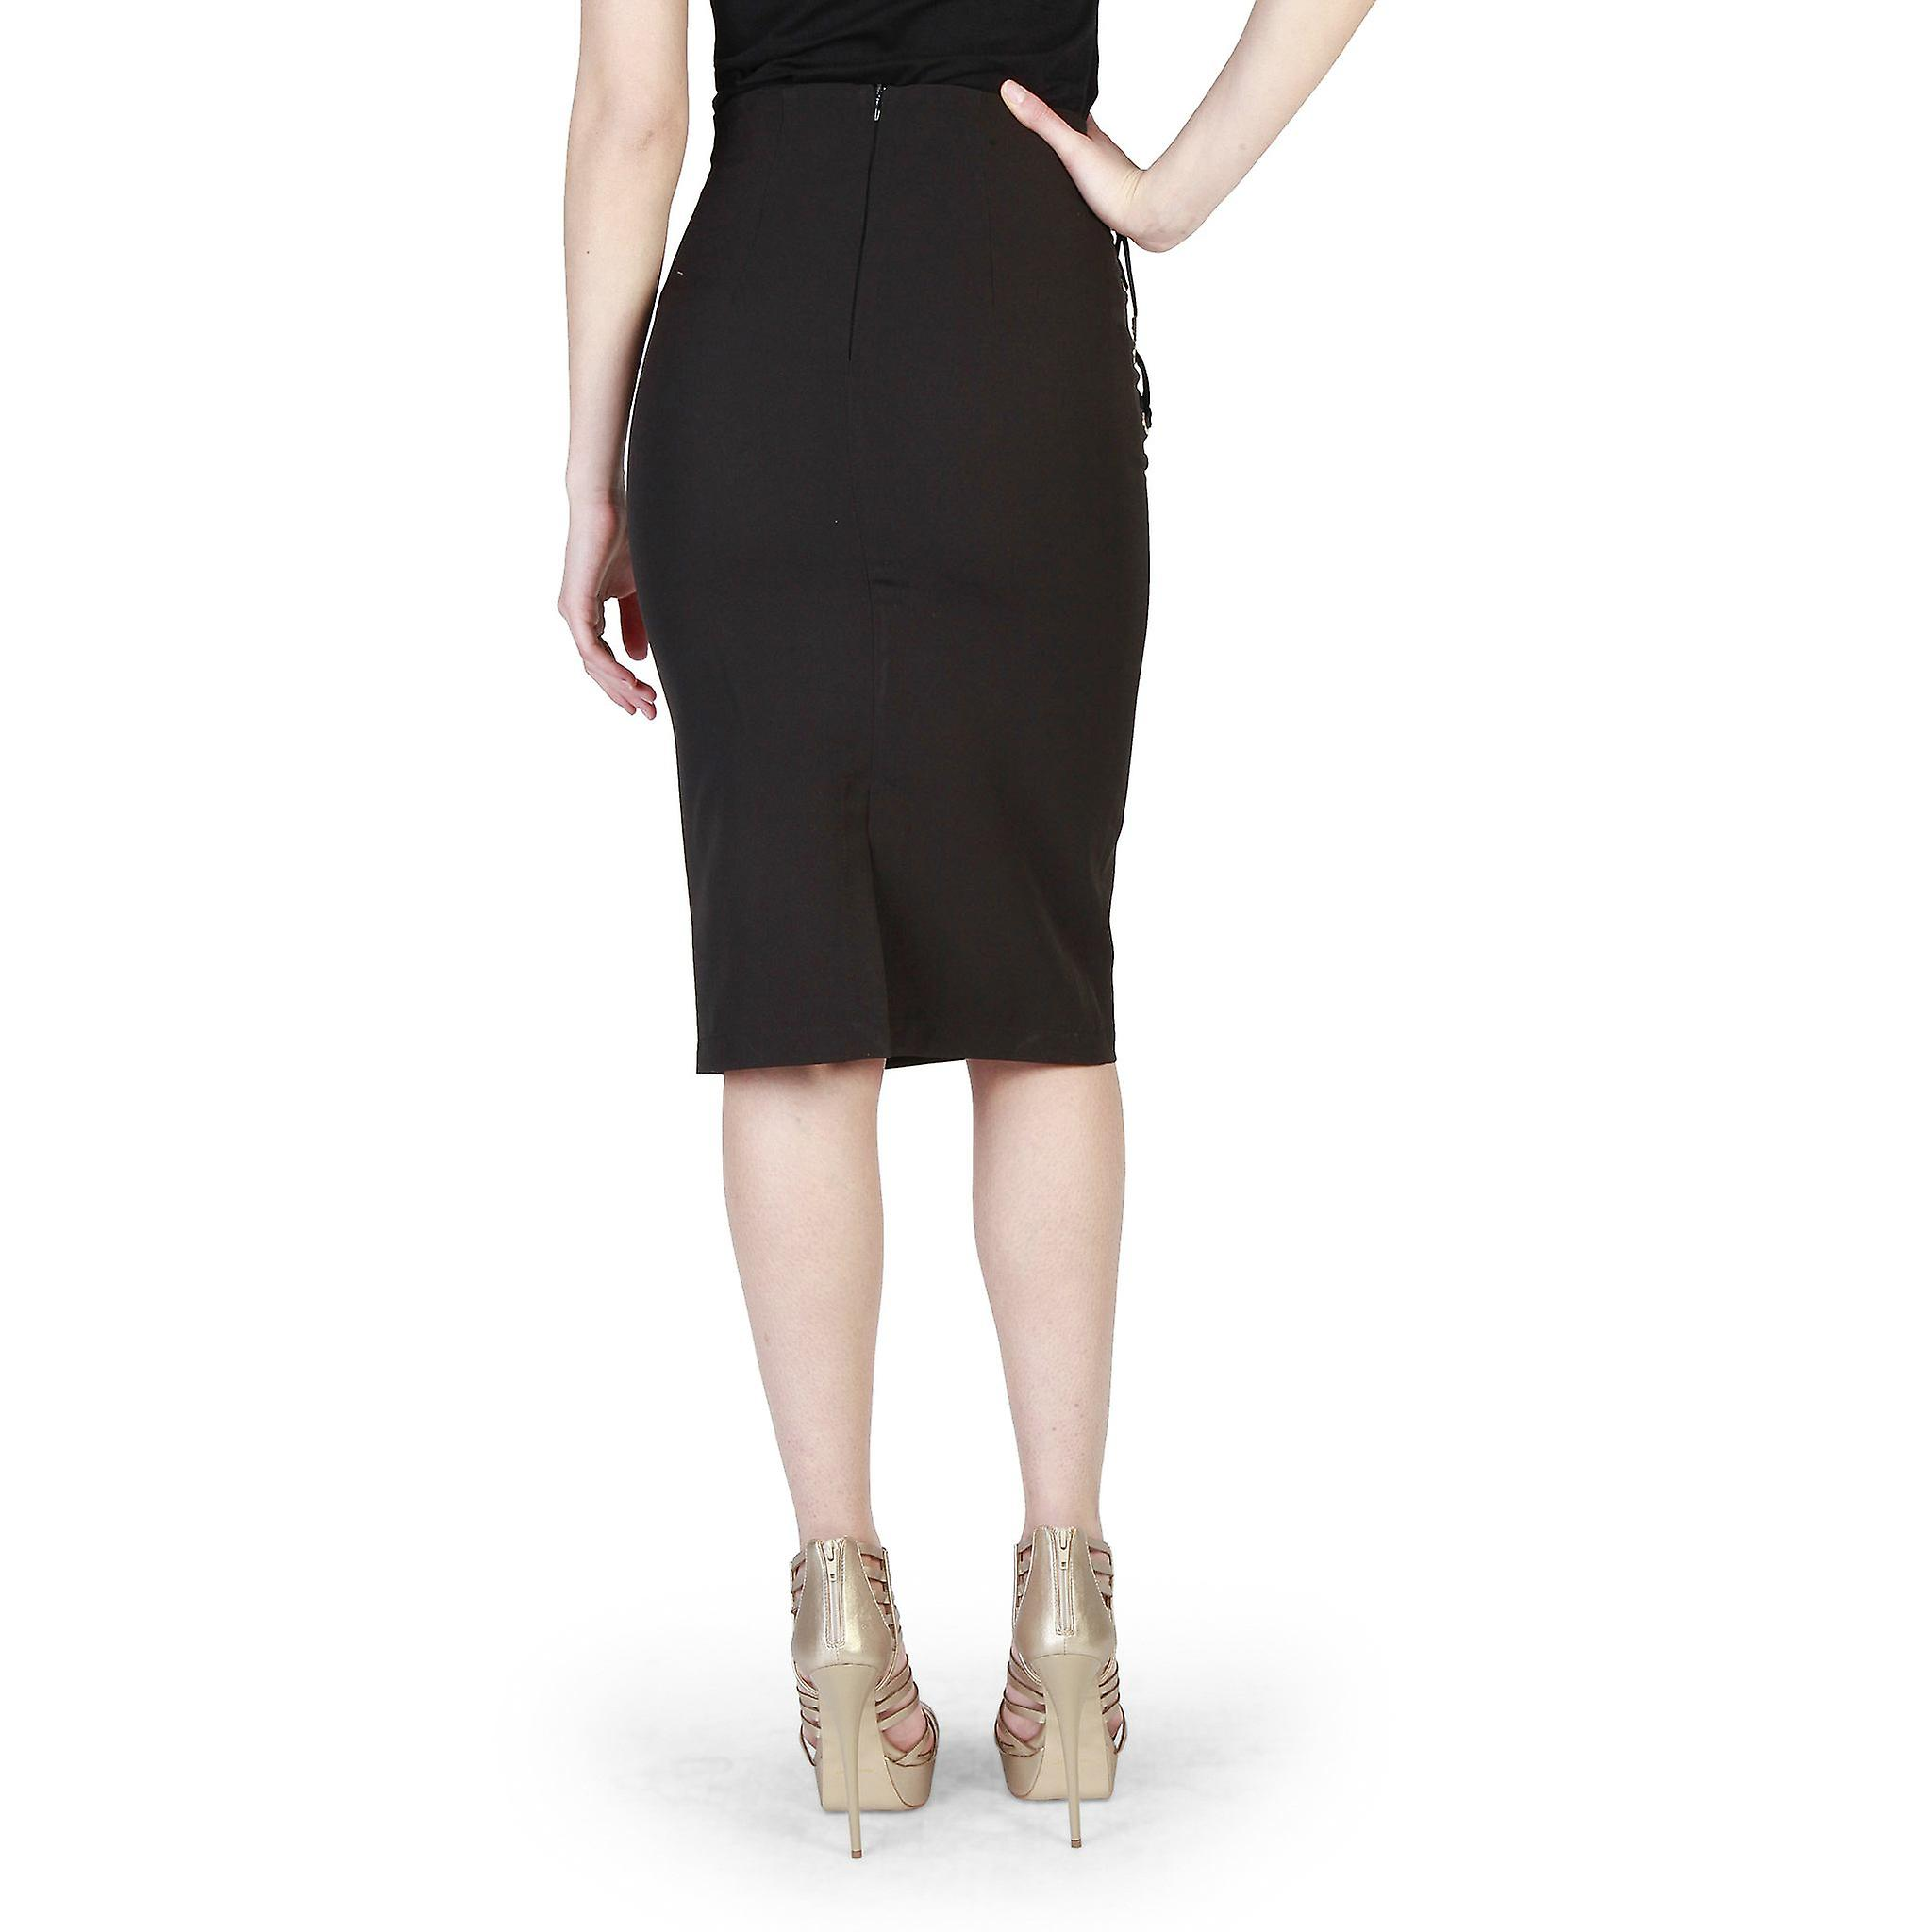 Rinascimento - 15570_002 Women's Skirt